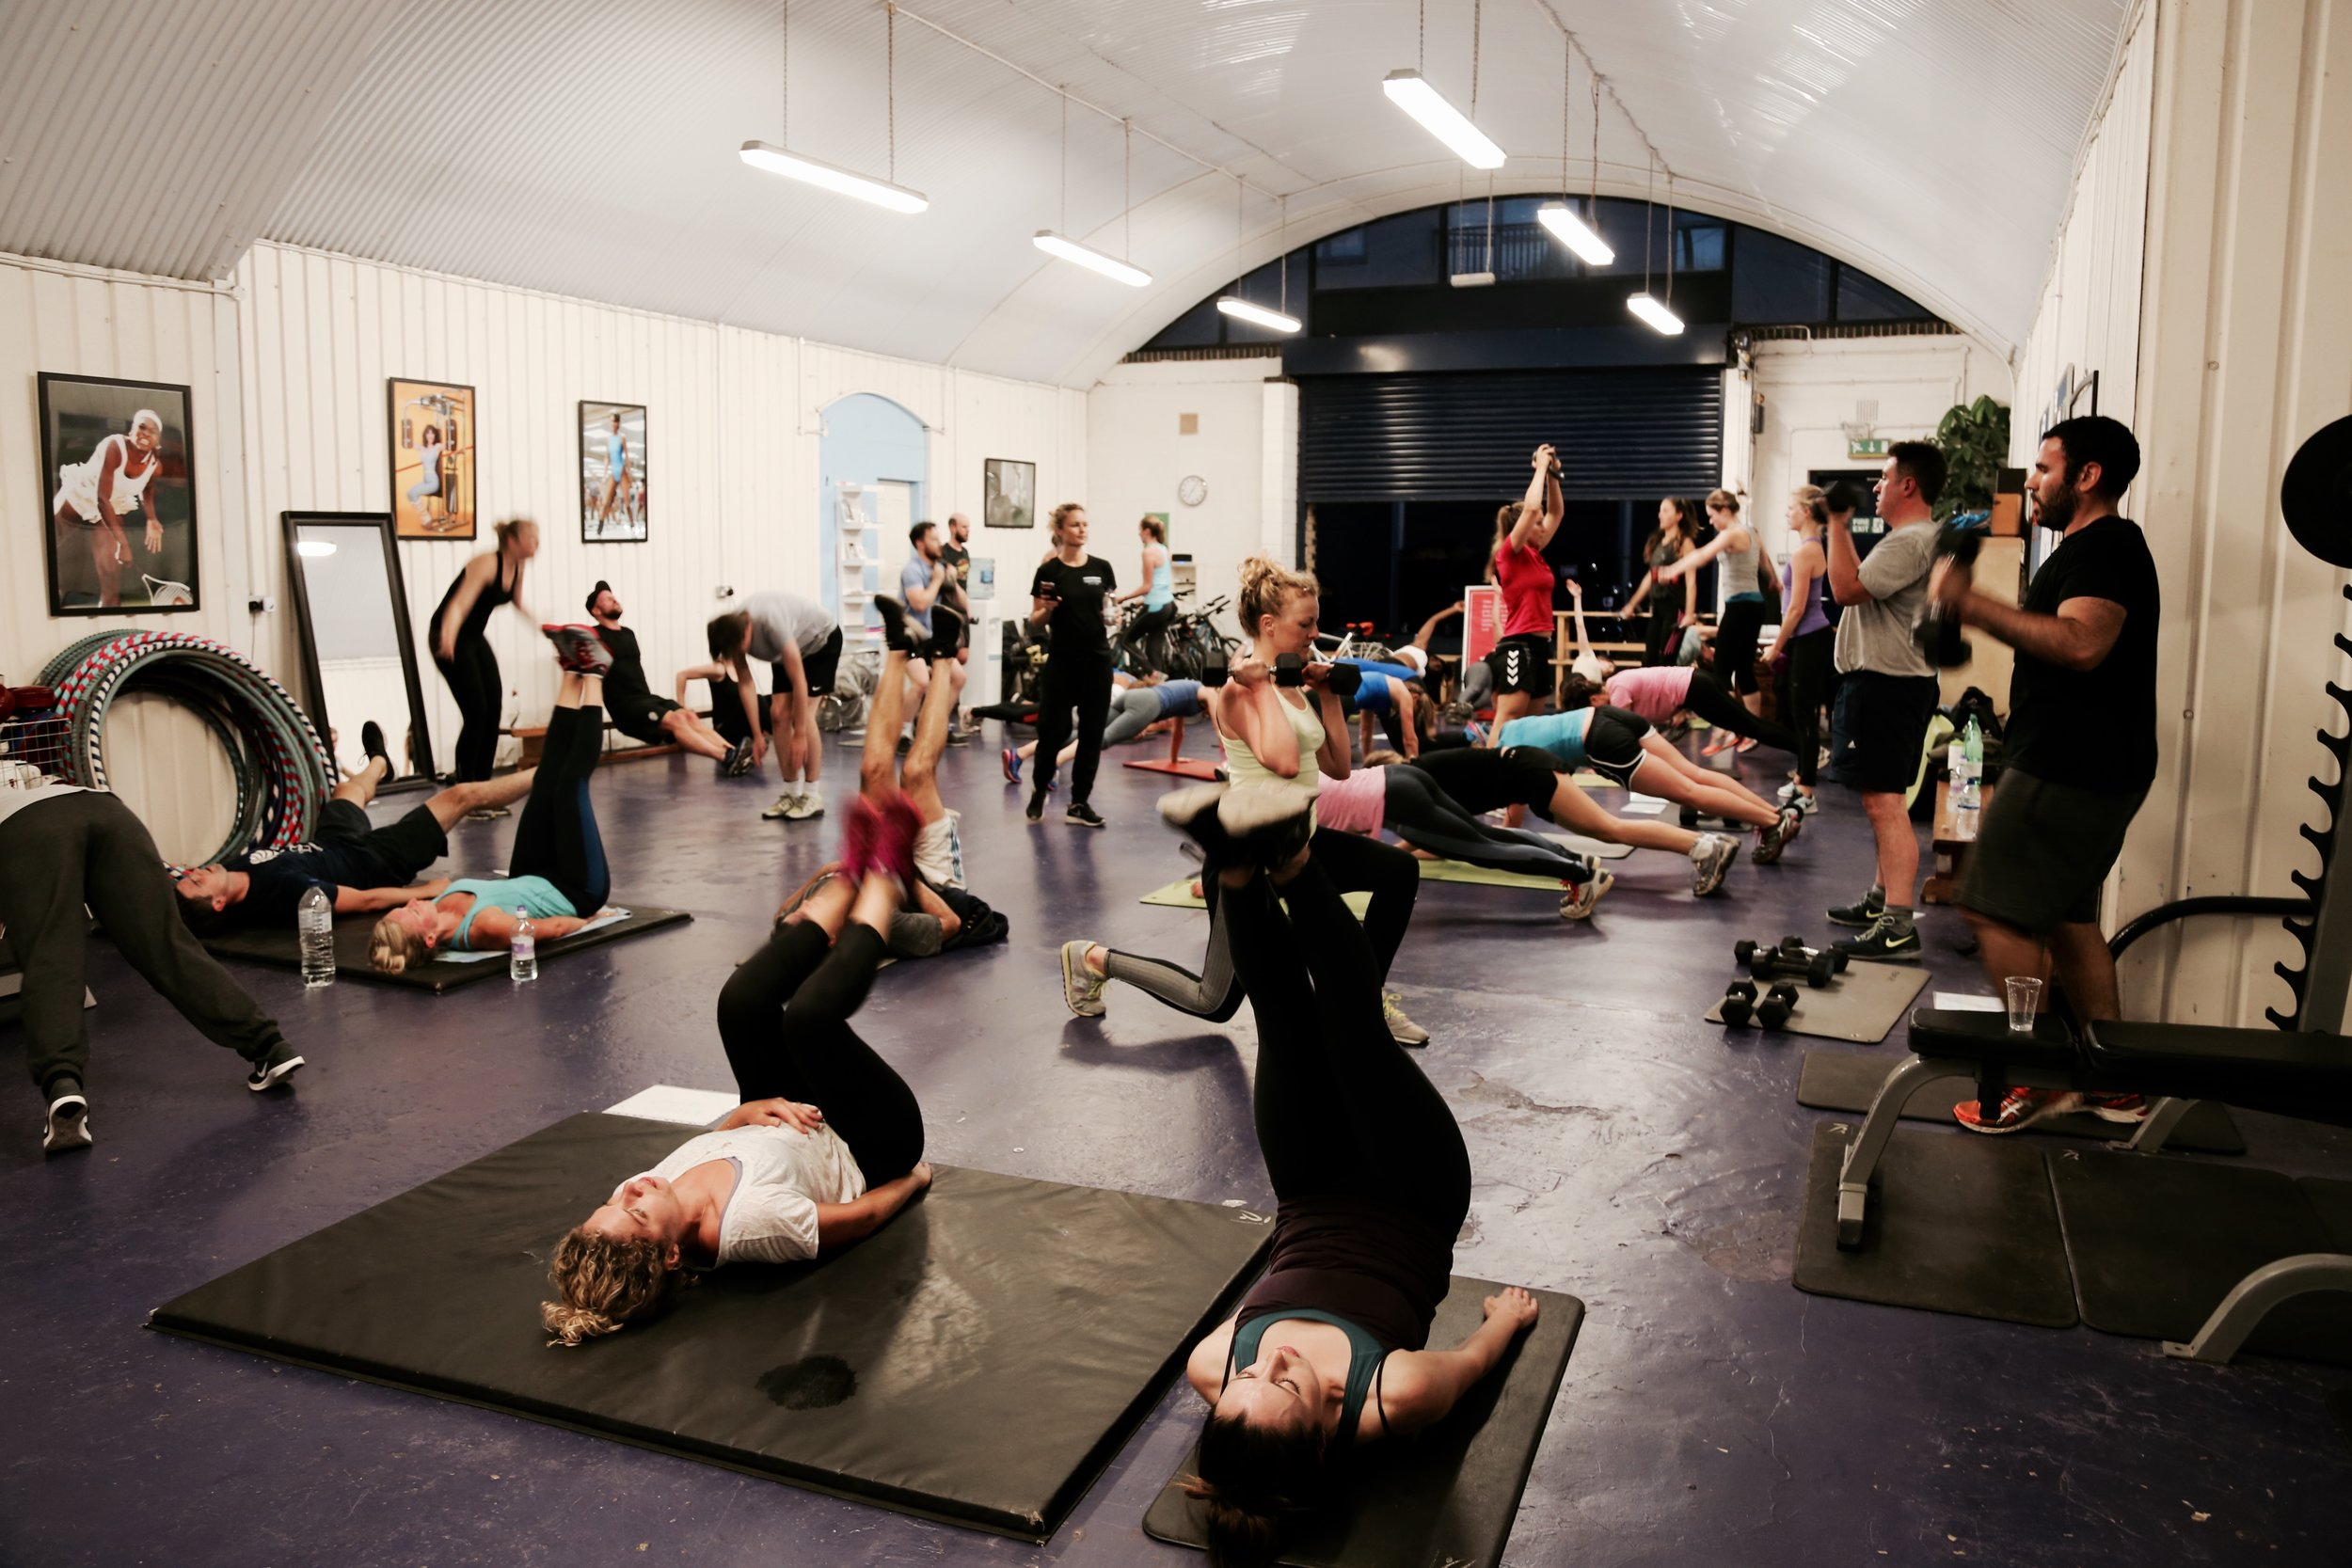 Circuits - Like a high-school gym class, participants move around a circuit of exercise stations in small groups. Expect strengthening, toning and cardio segments designed to allow you to work at your own pace and get the most out of your workout.11.30am Tuesdays w/Rowan (60 mins)11.30am Wednesdays w/Alex (60 mins)£6 Drop-in, included in the Class Pass